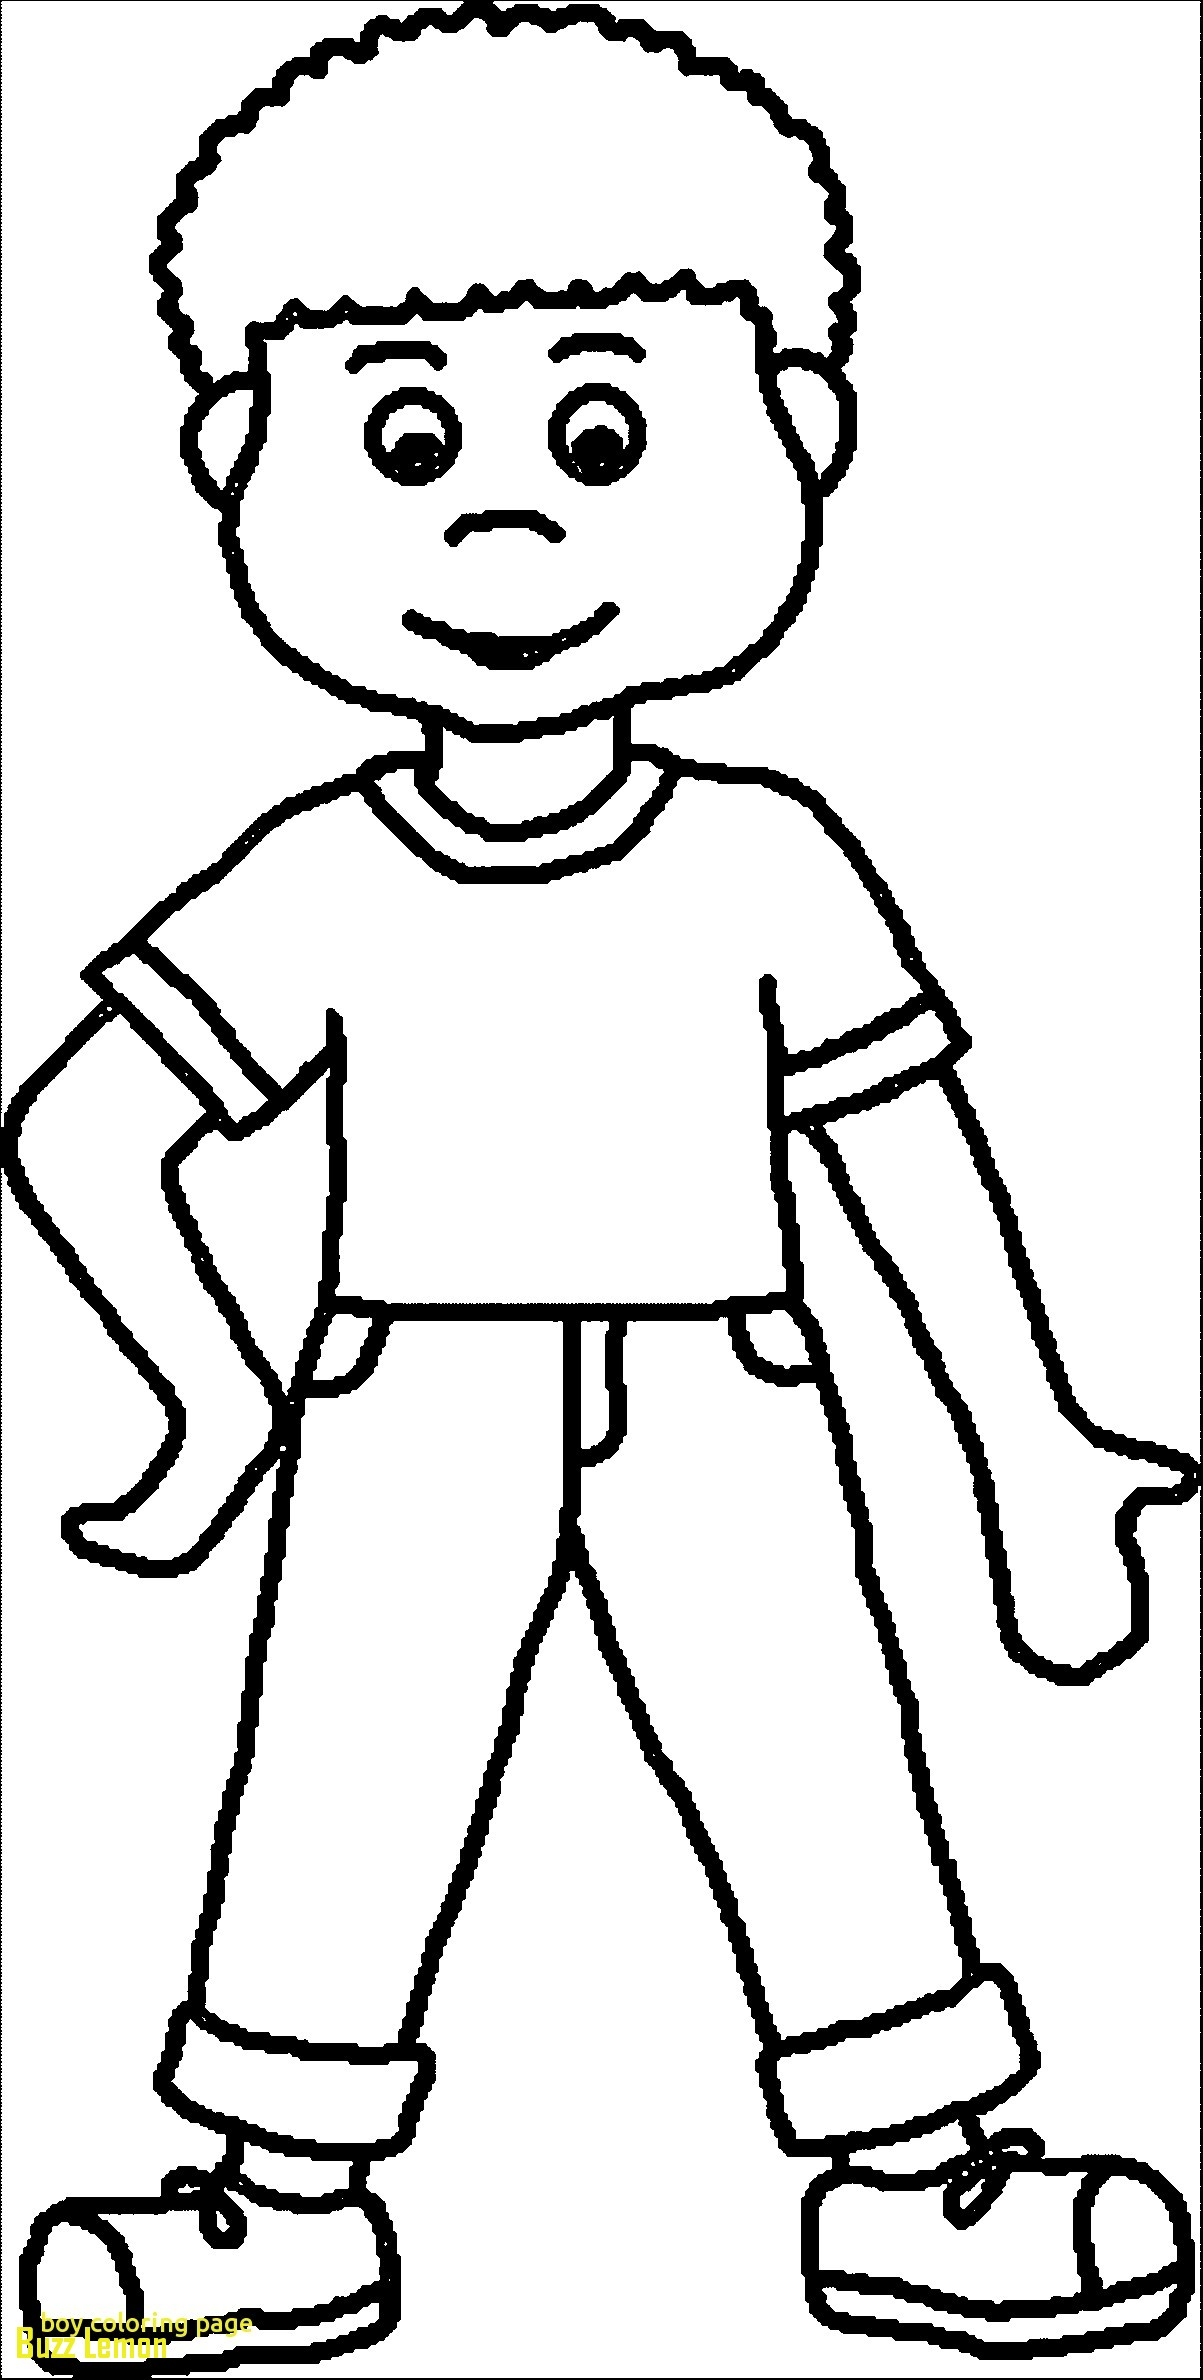 colouring page of a boy a coloring page of a little boy coloring home boy a colouring of page